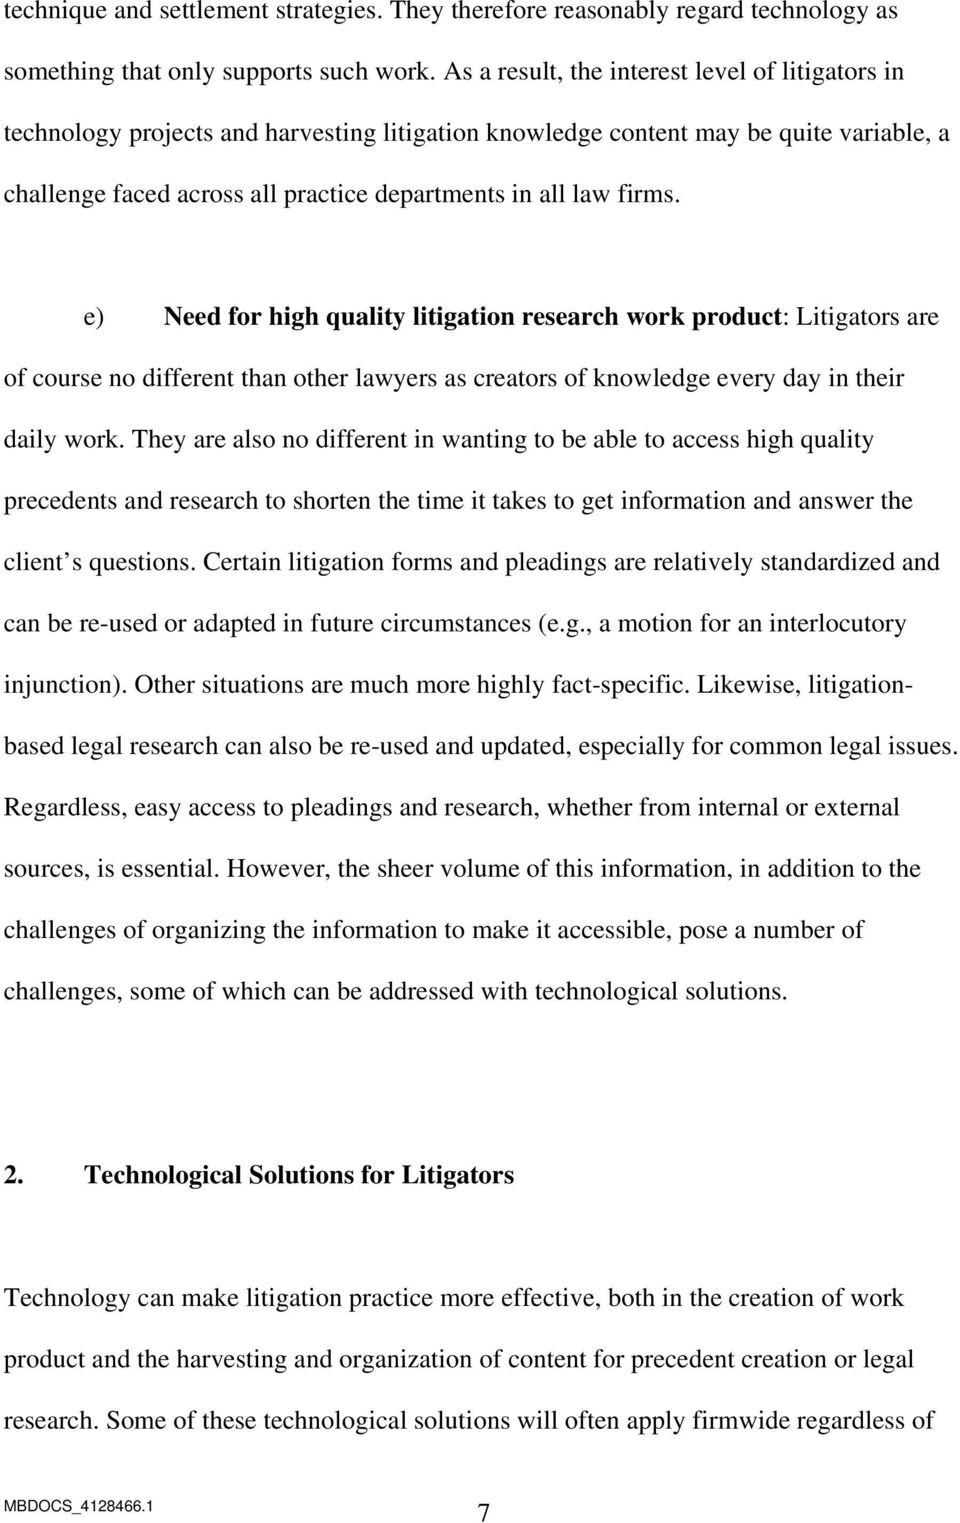 firms. e) Need for high quality litigation research work product: Litigators are of course no different than other lawyers as creators of knowledge every day in their daily work.